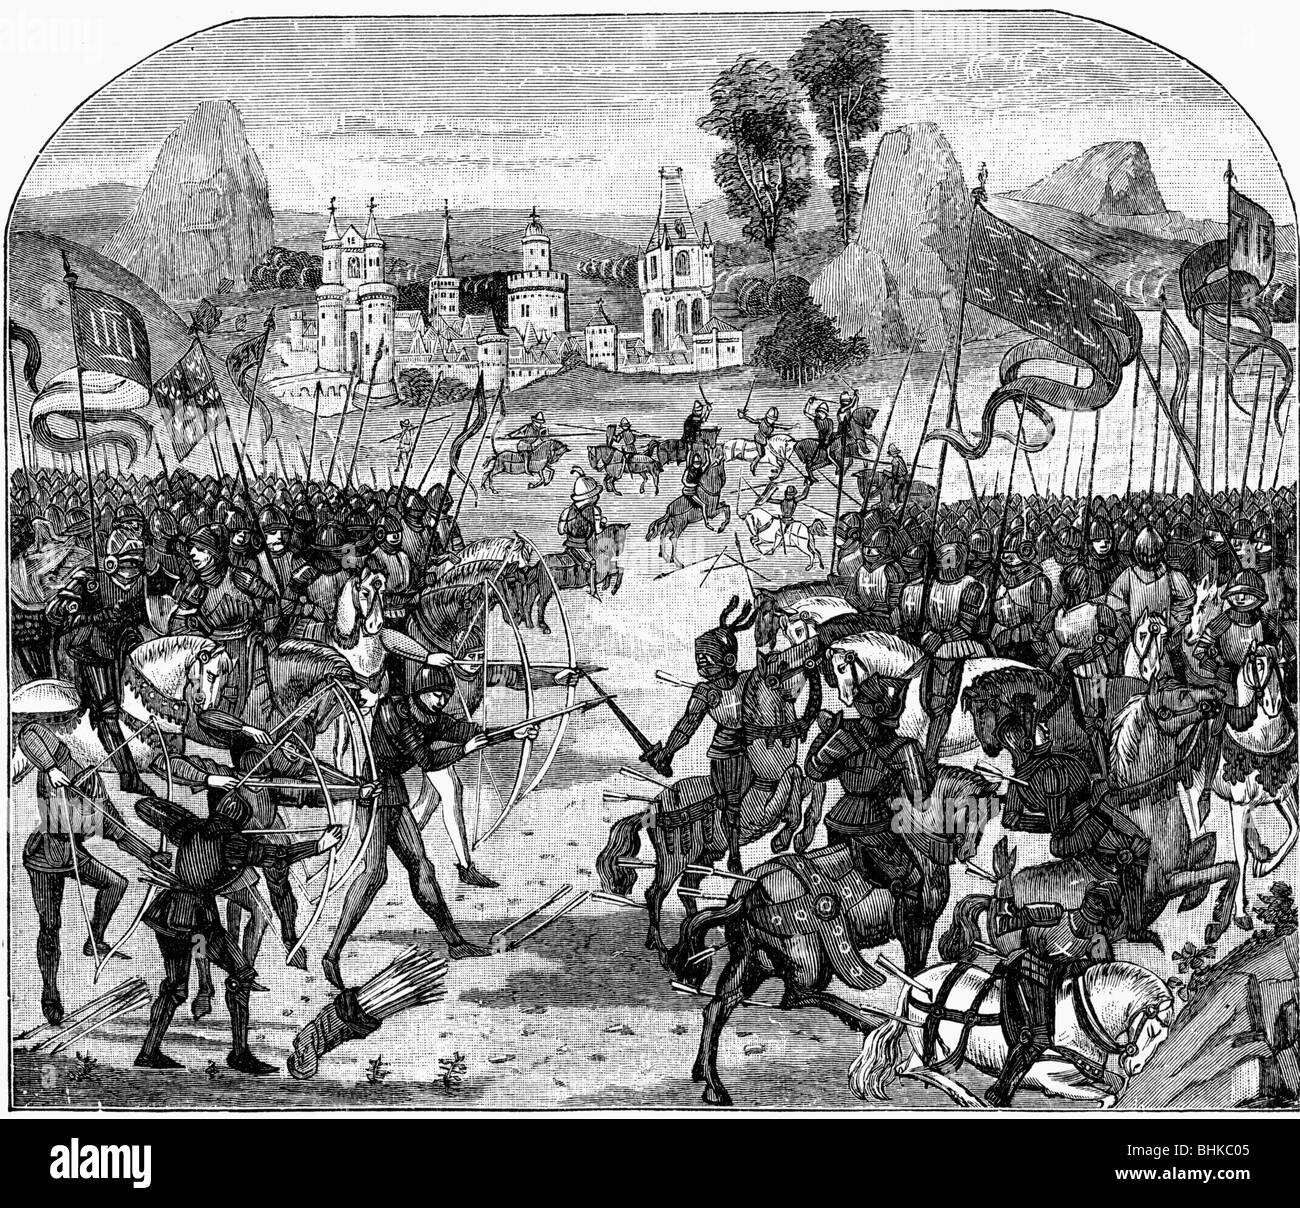 events, Hundred Years' War 1337 - 1453, Battle of Poitiers, 19.9.1356, Chronicles of Jean Froissart, 14th century, - Stock Image